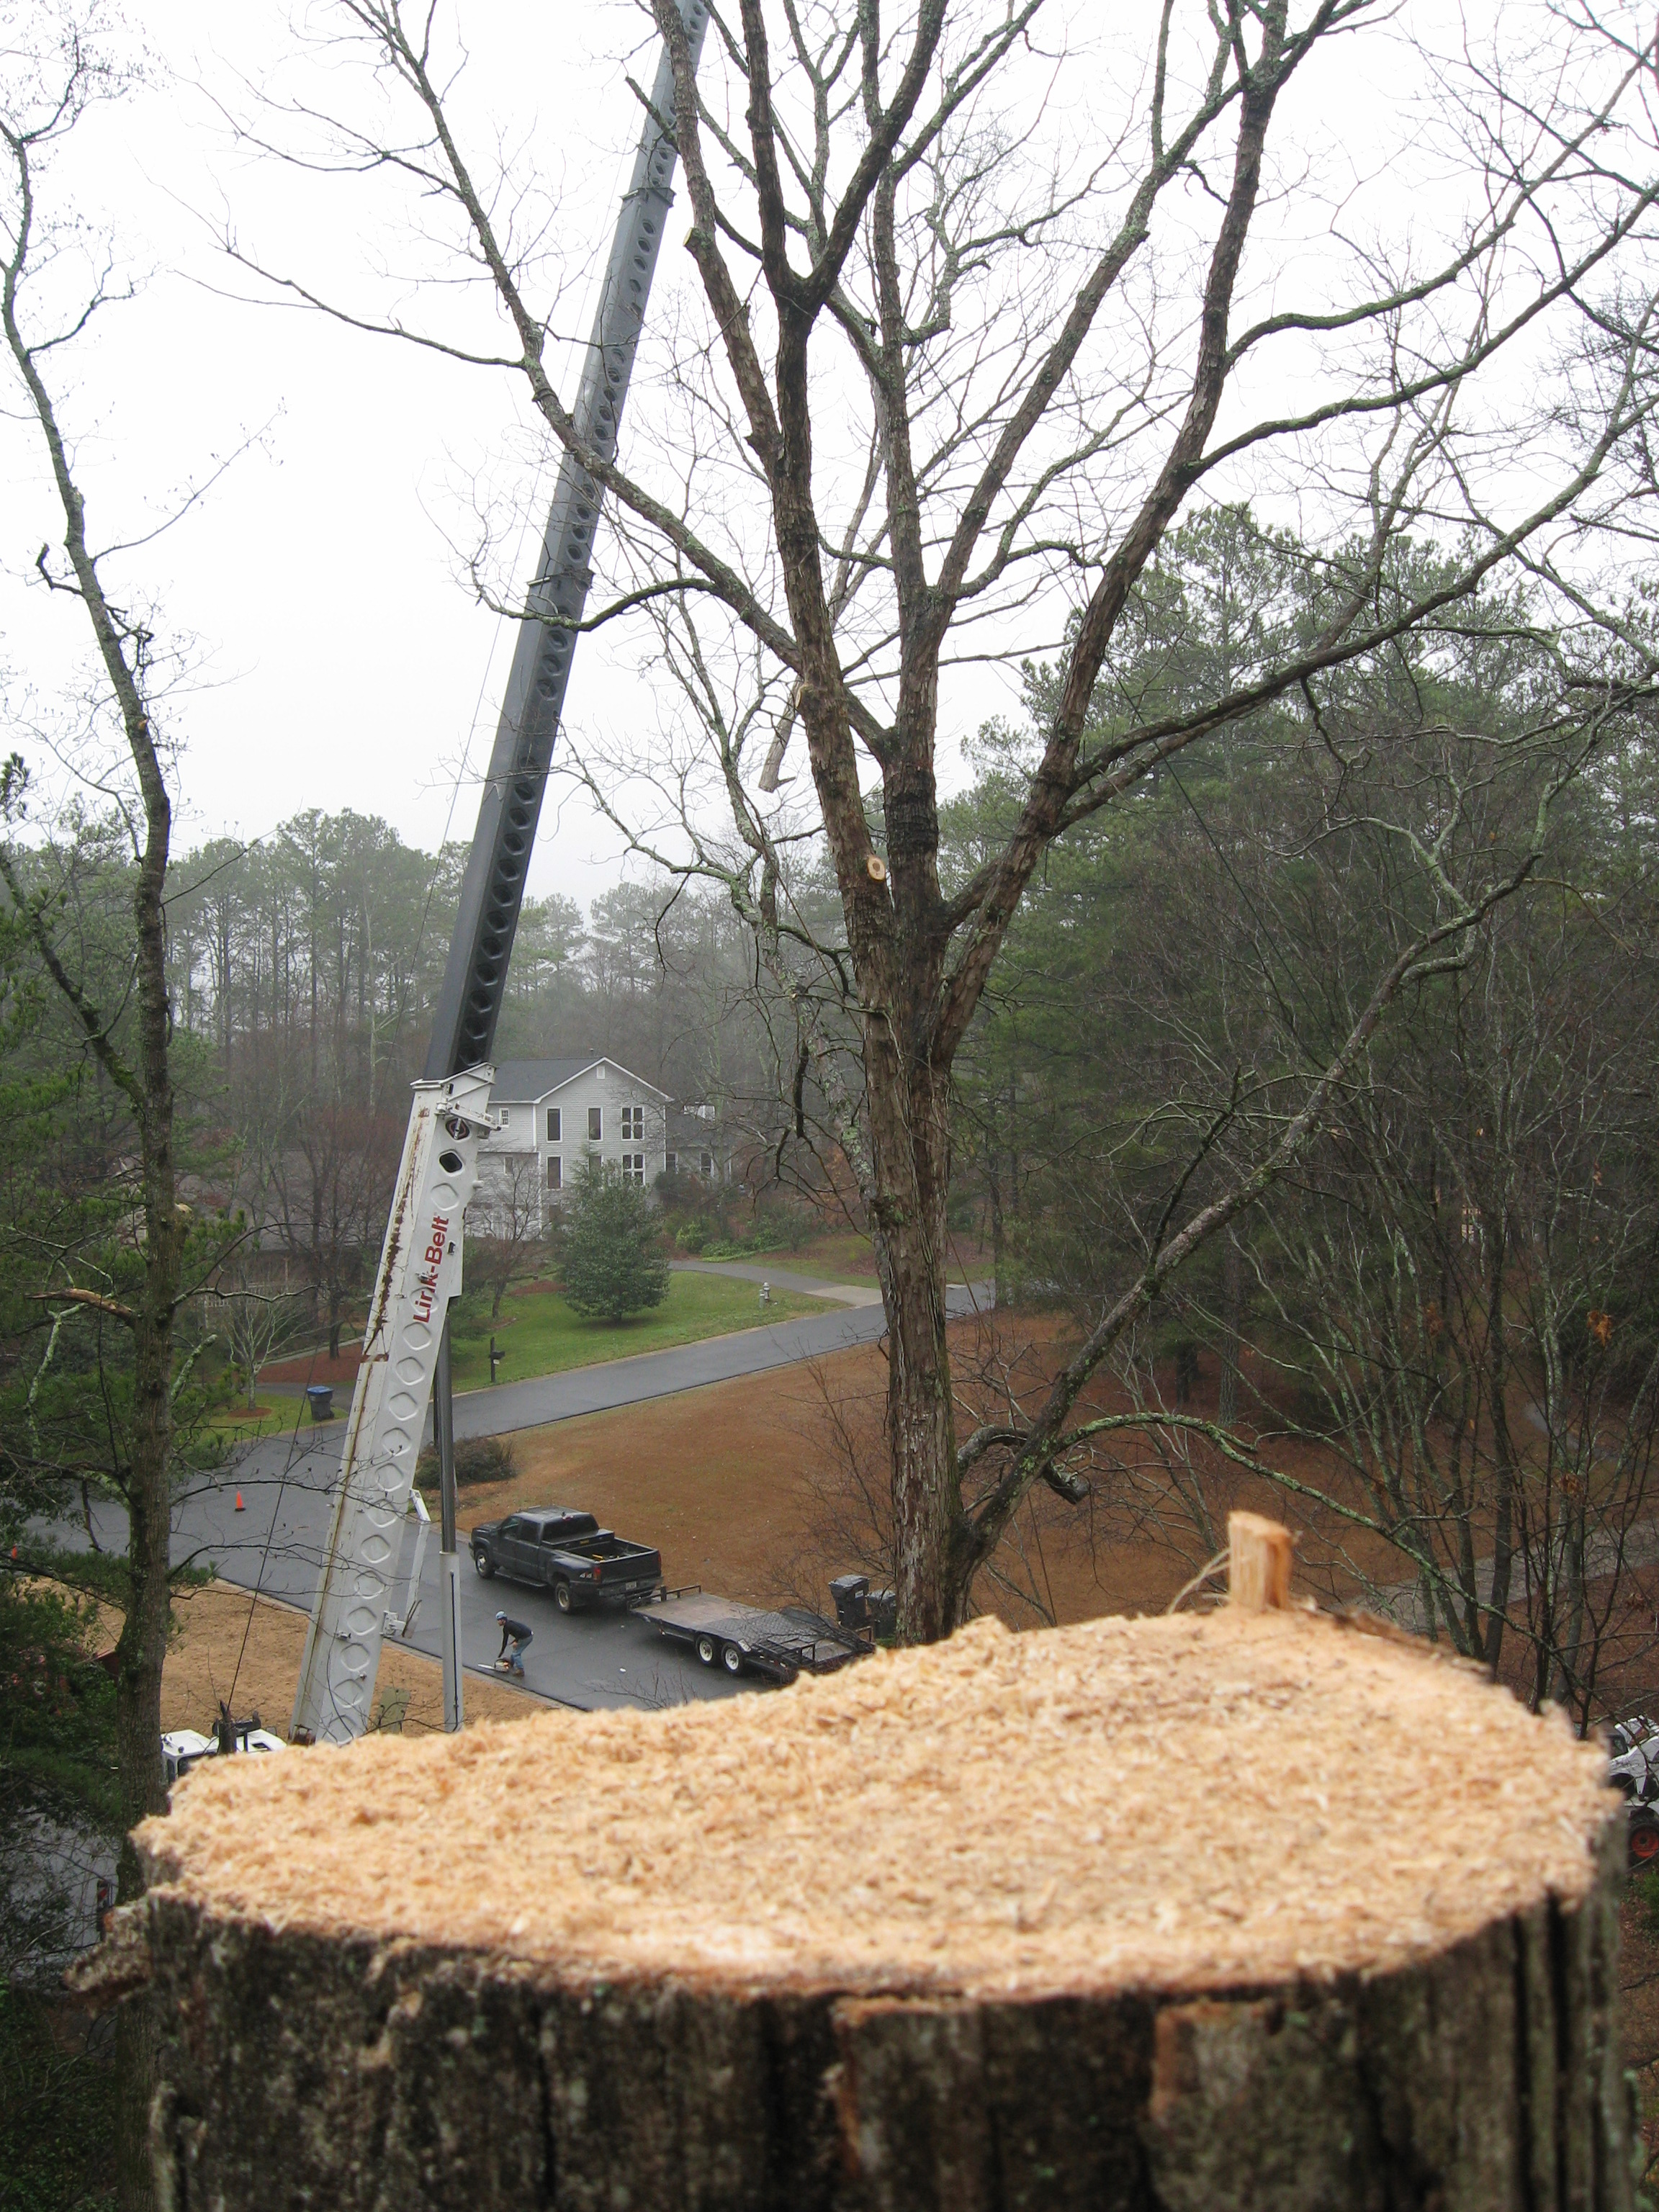 Local tree service is brought in to safely remove tree with crane.